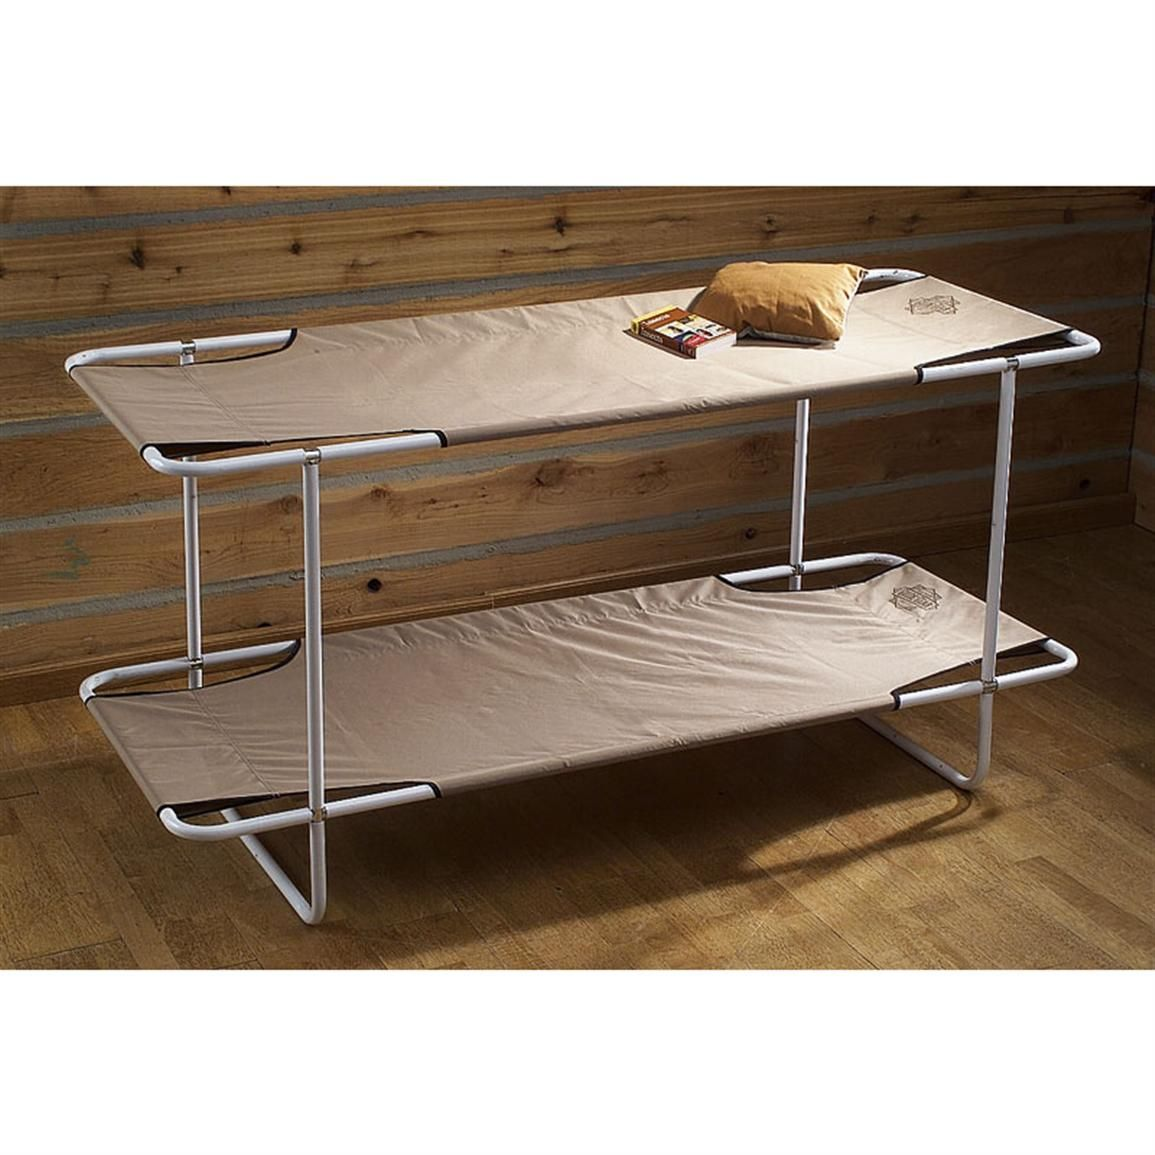 Guide Gear Camp Bunk Bed Khaki 71676 Cots At Sportsman S